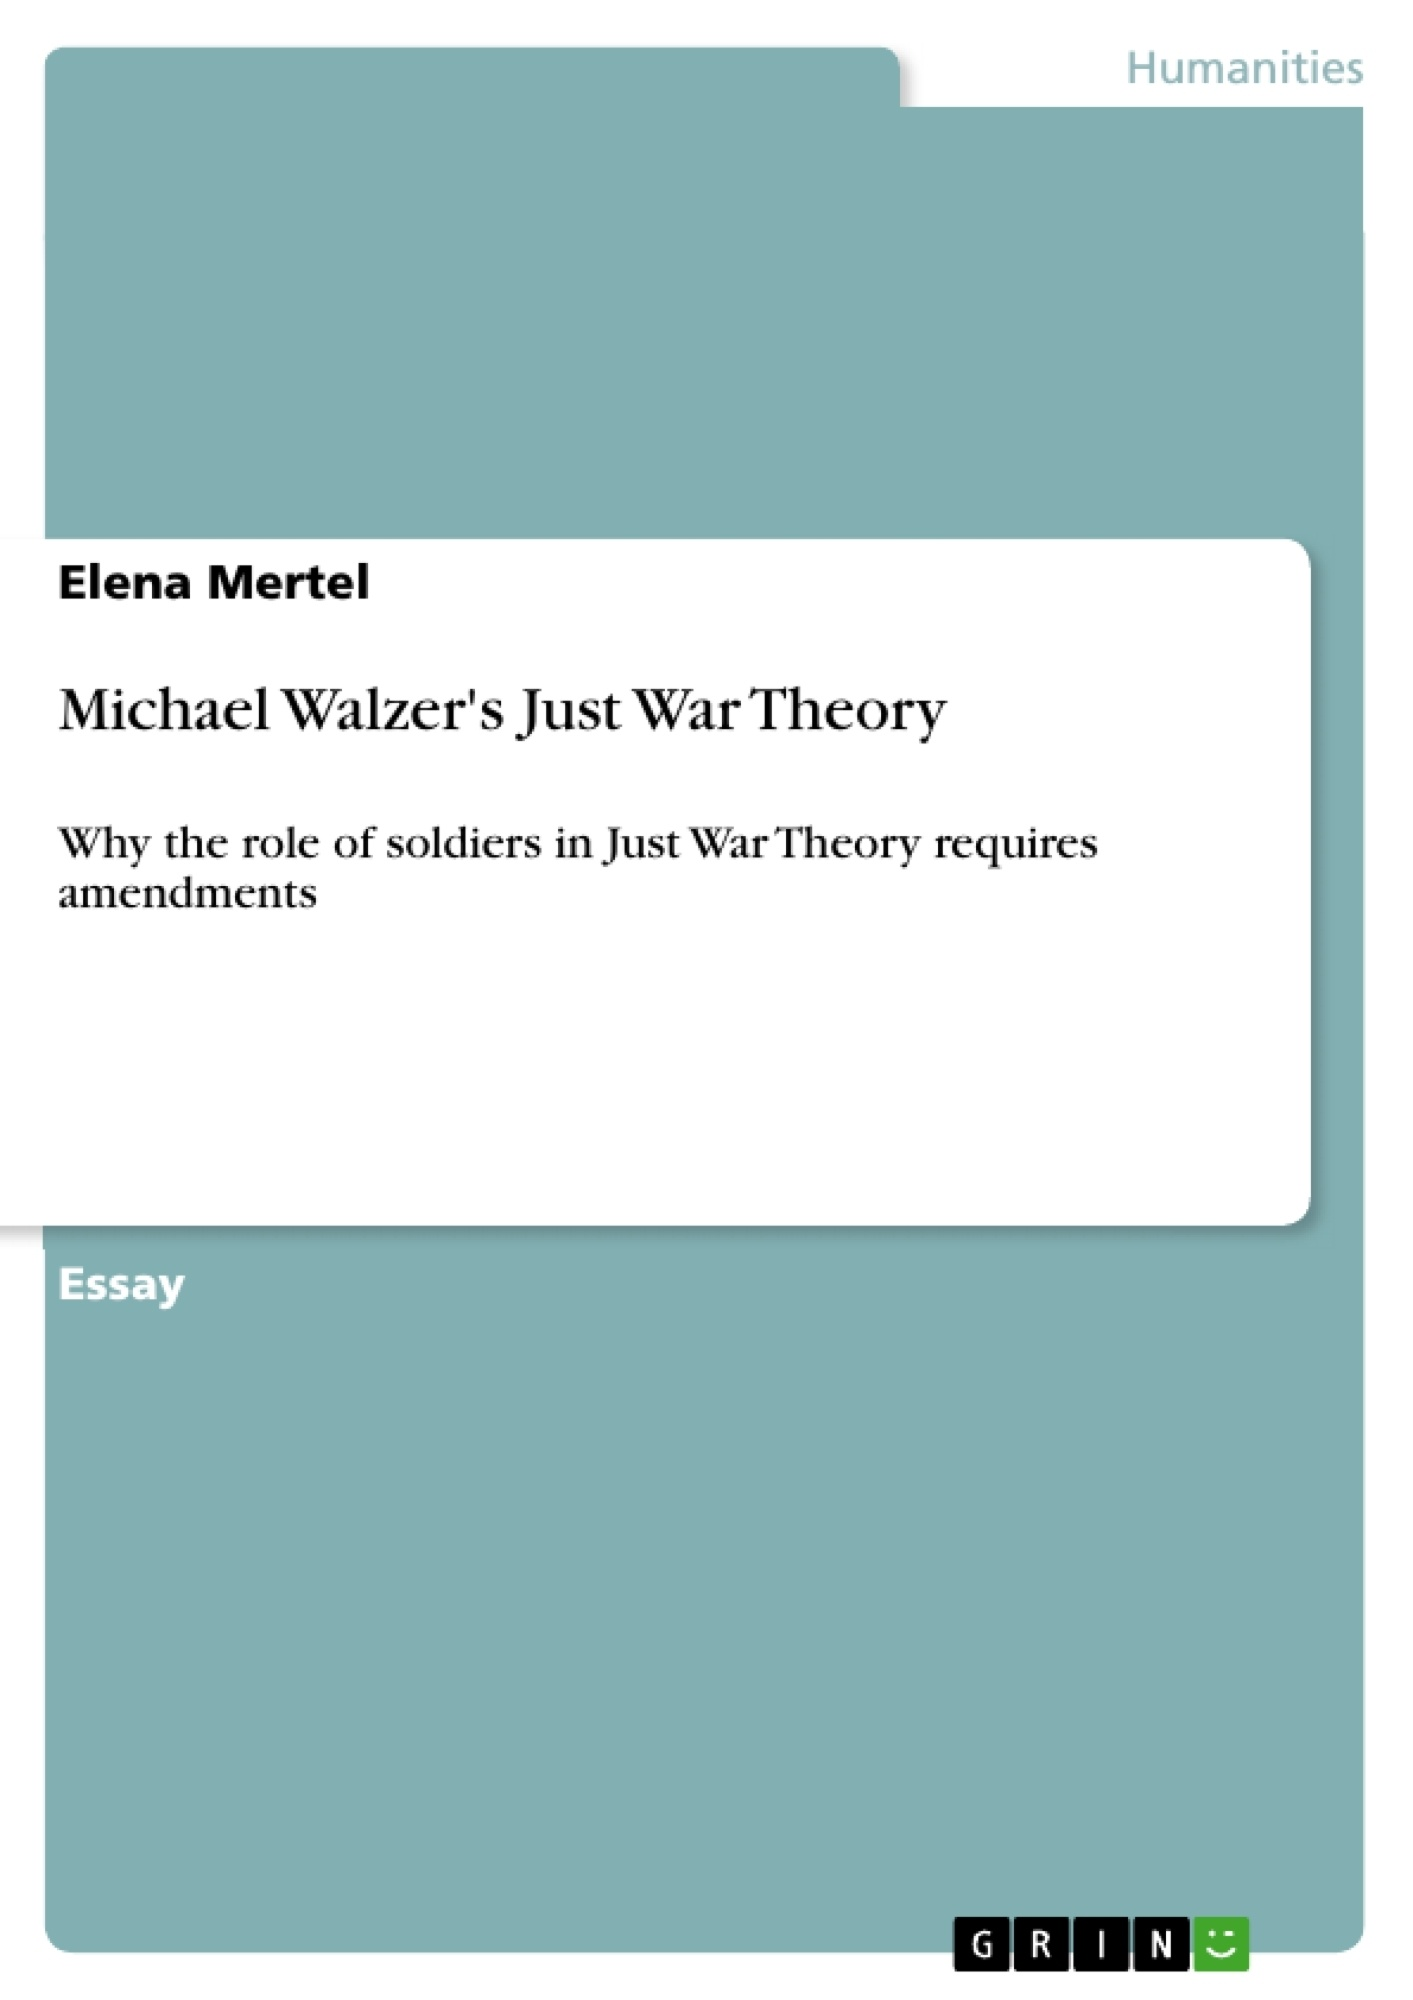 Title: Michael Walzer's Just War Theory